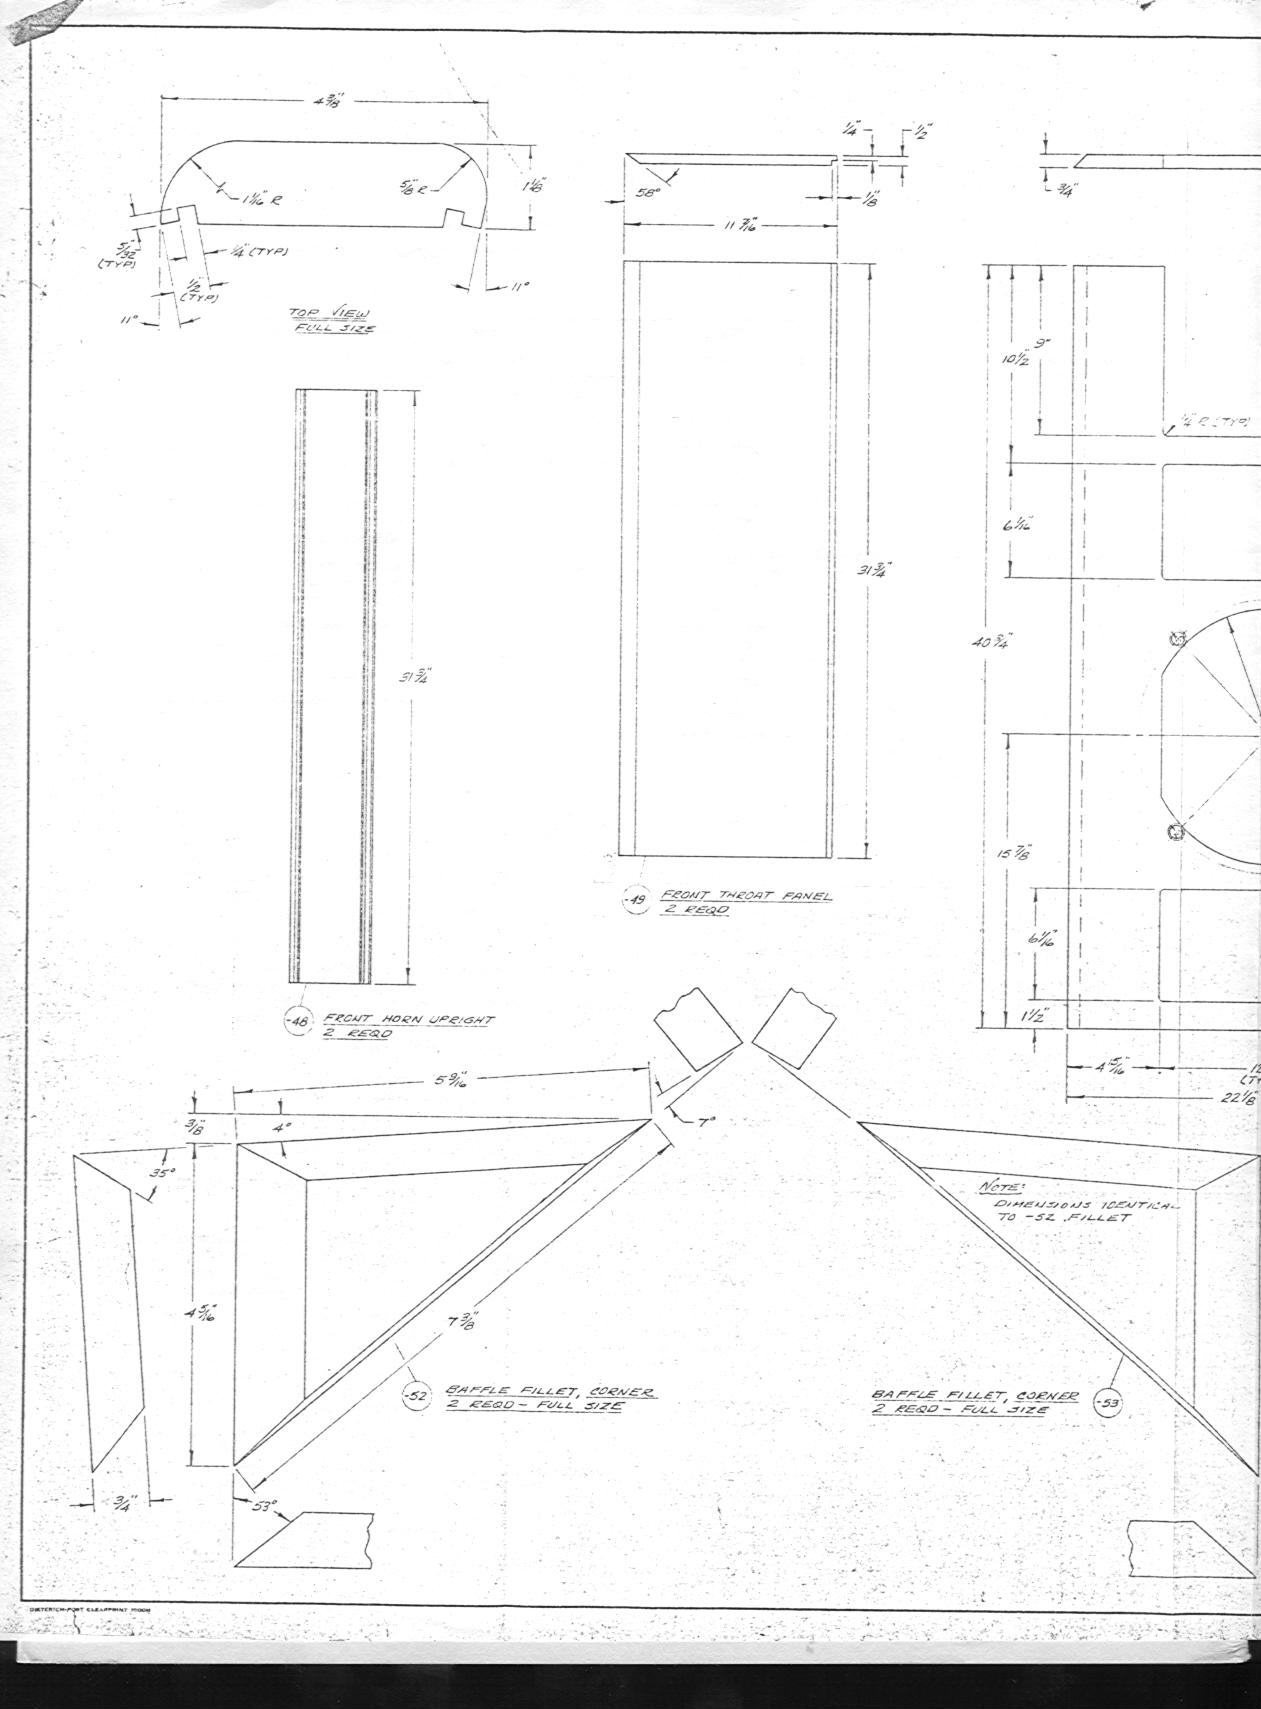 Loudspeaker Schematic Diagram And Cabinet Design Plan